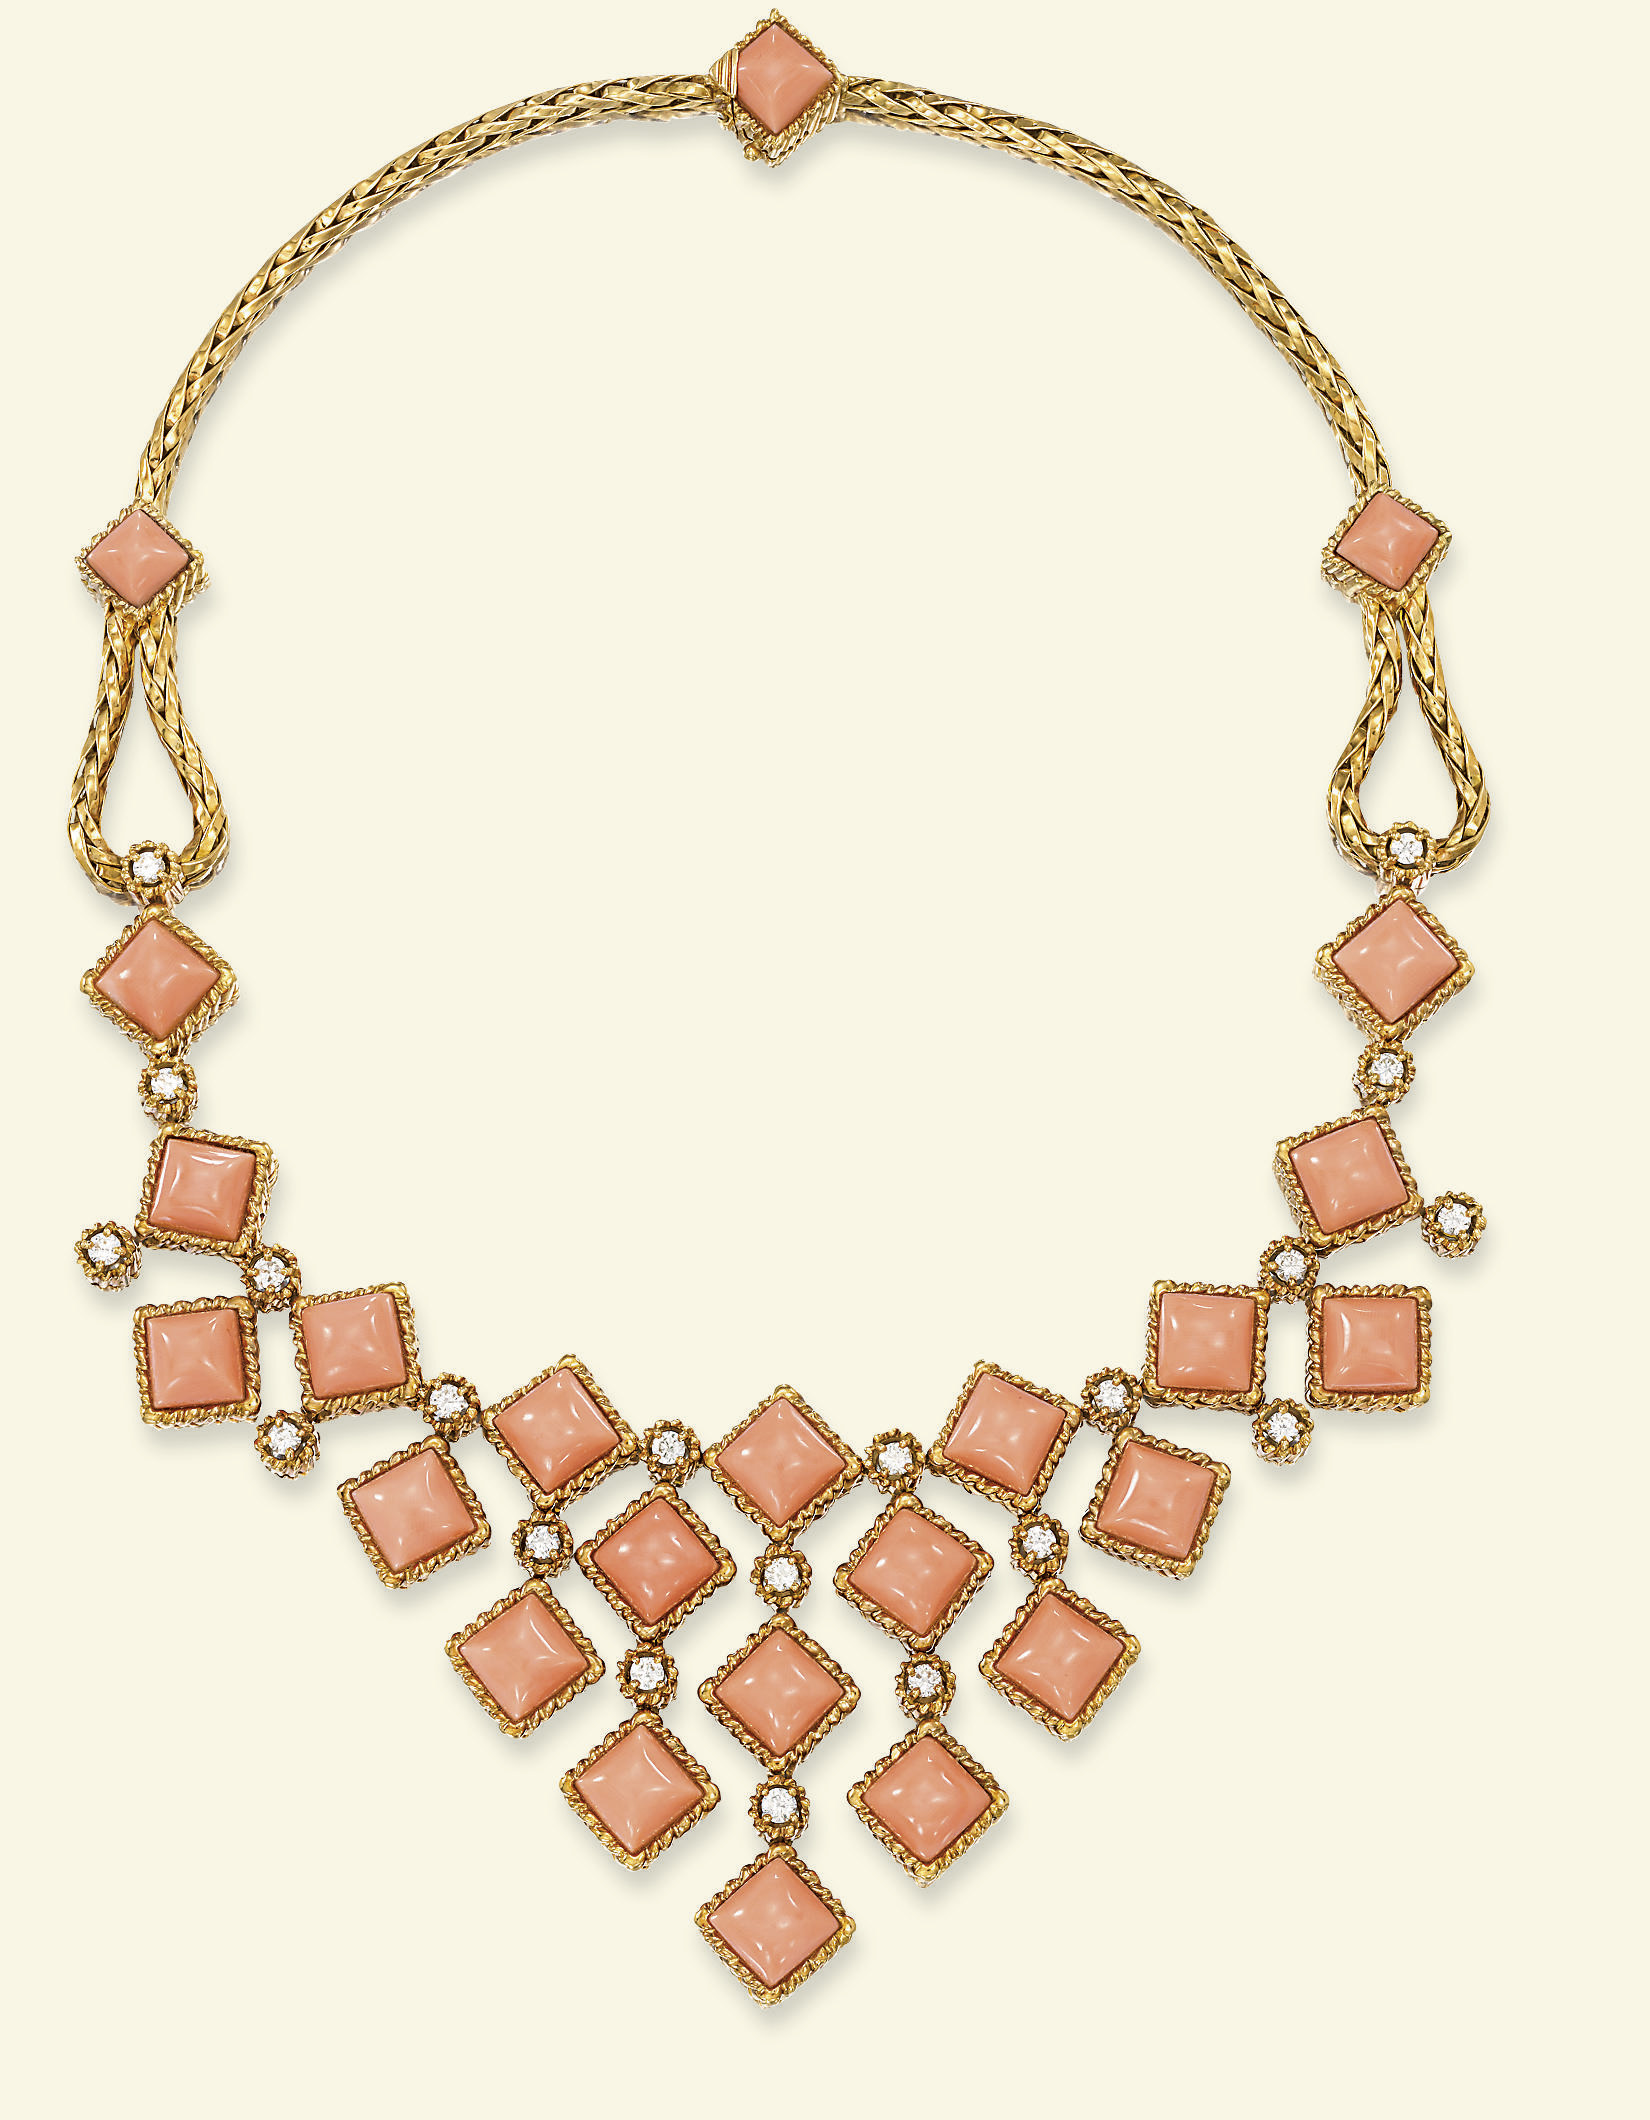 A CORAL AND DIAMOND NECKLACE,